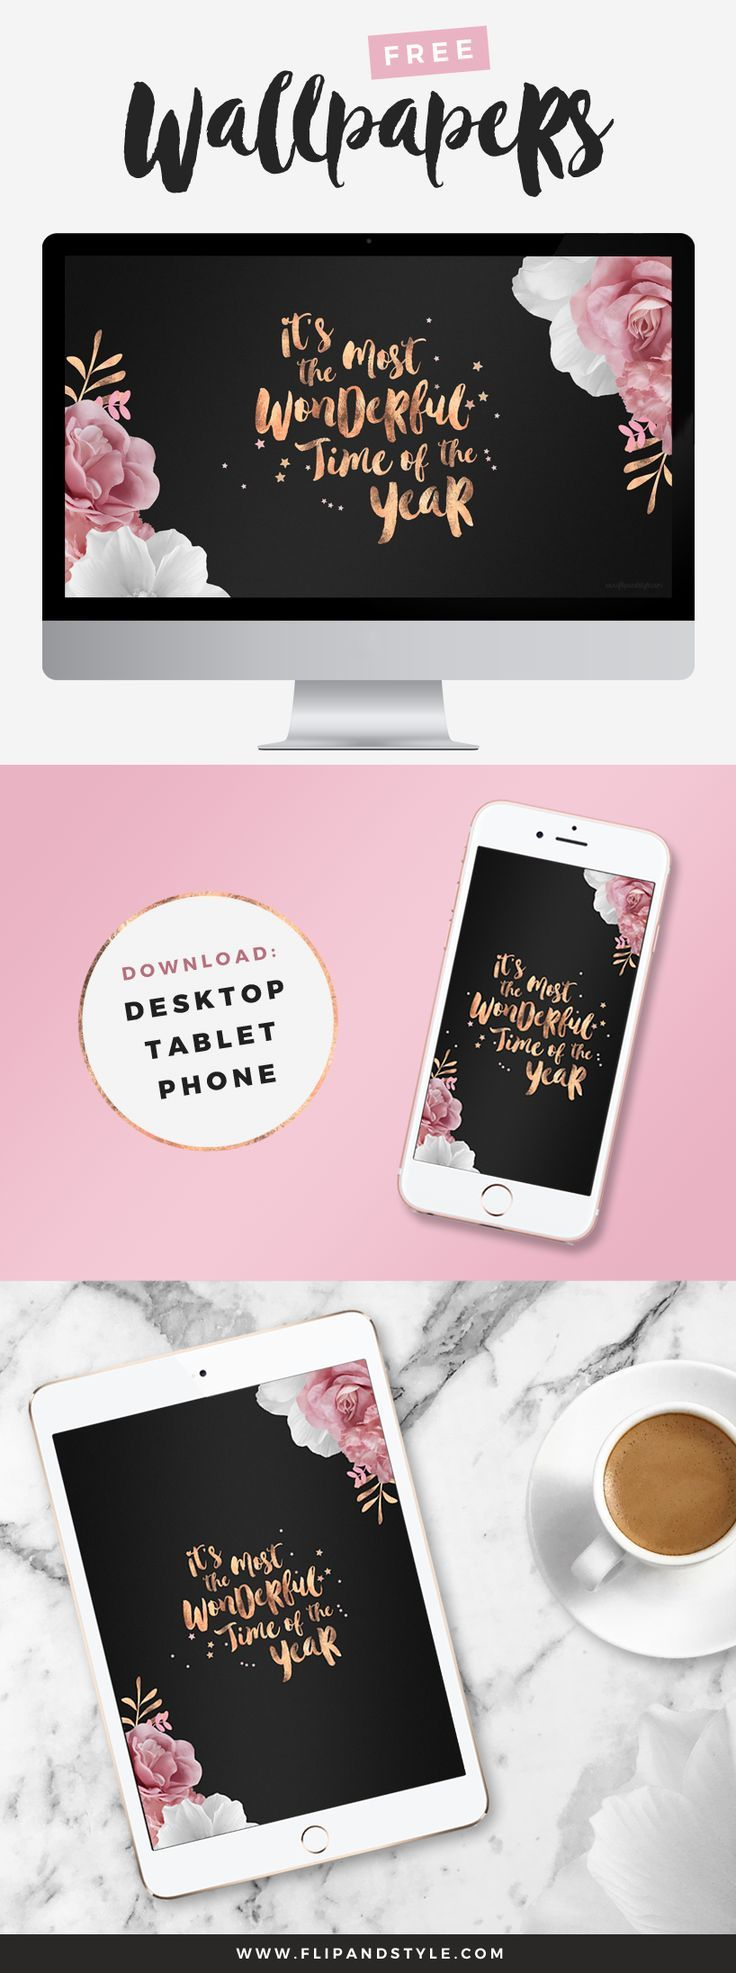 FREE rose gold festive wallpapers for you to download! Desktop, iPhone 7 Plus and iPad | www.flipandstyle.com